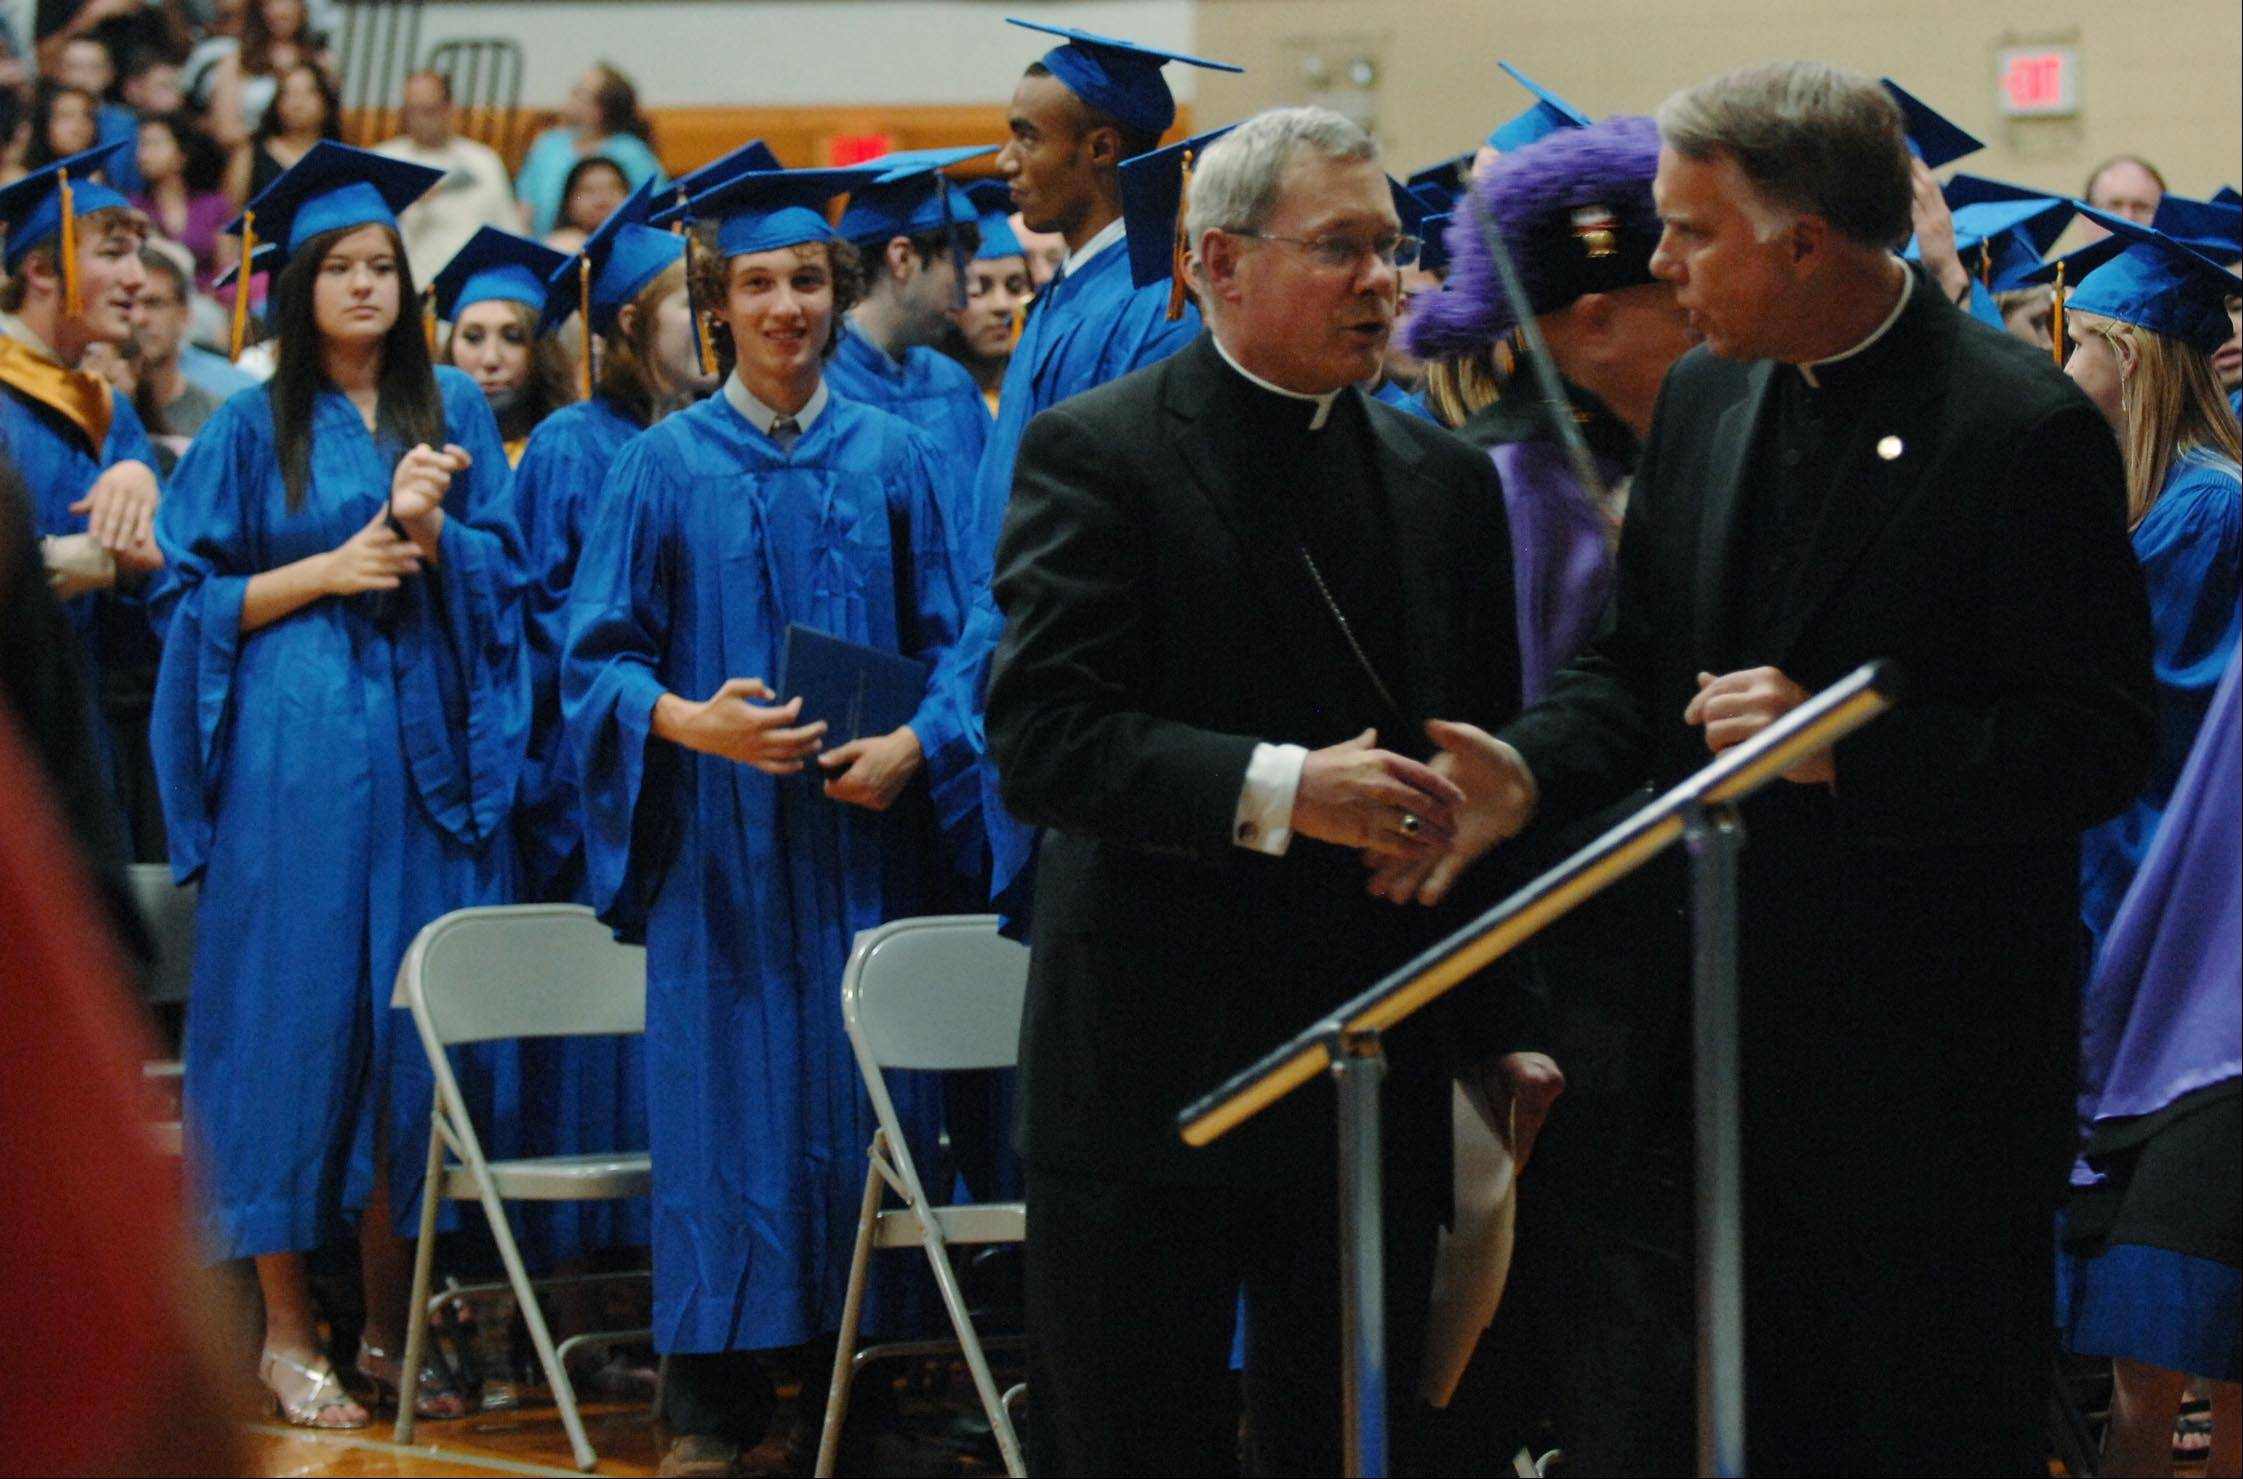 Images from the Aurora Central Catholic High School graduation ceremony Thursday, May 24, 2012 in Aurora.